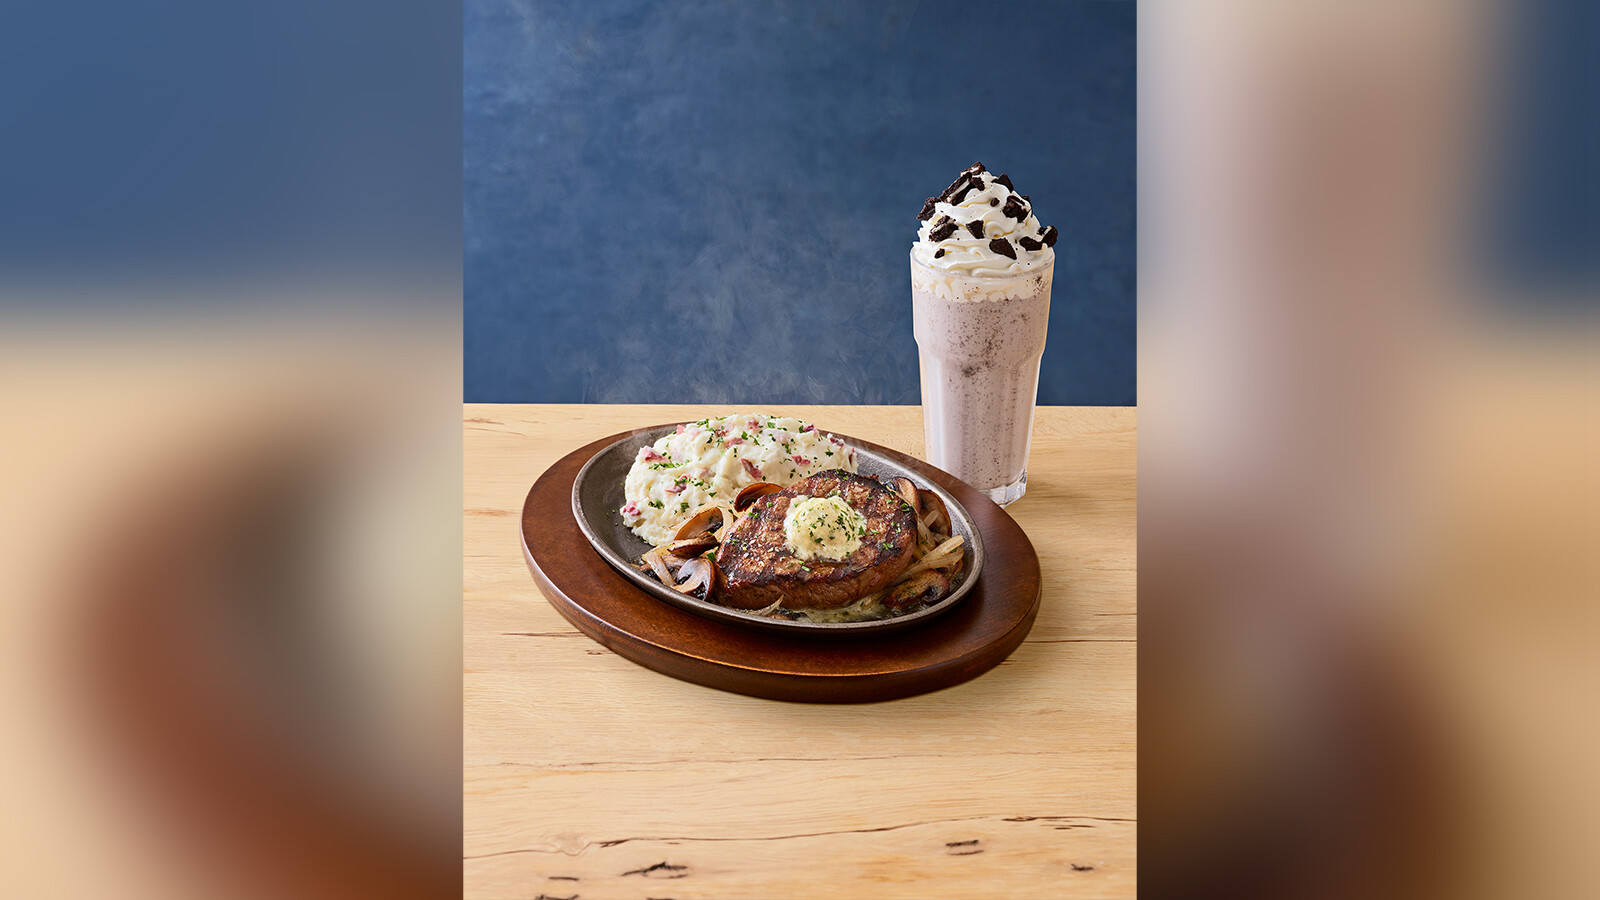 This Applebee's dessert got a shout-out in a popular song. Now the chain is bringing it back